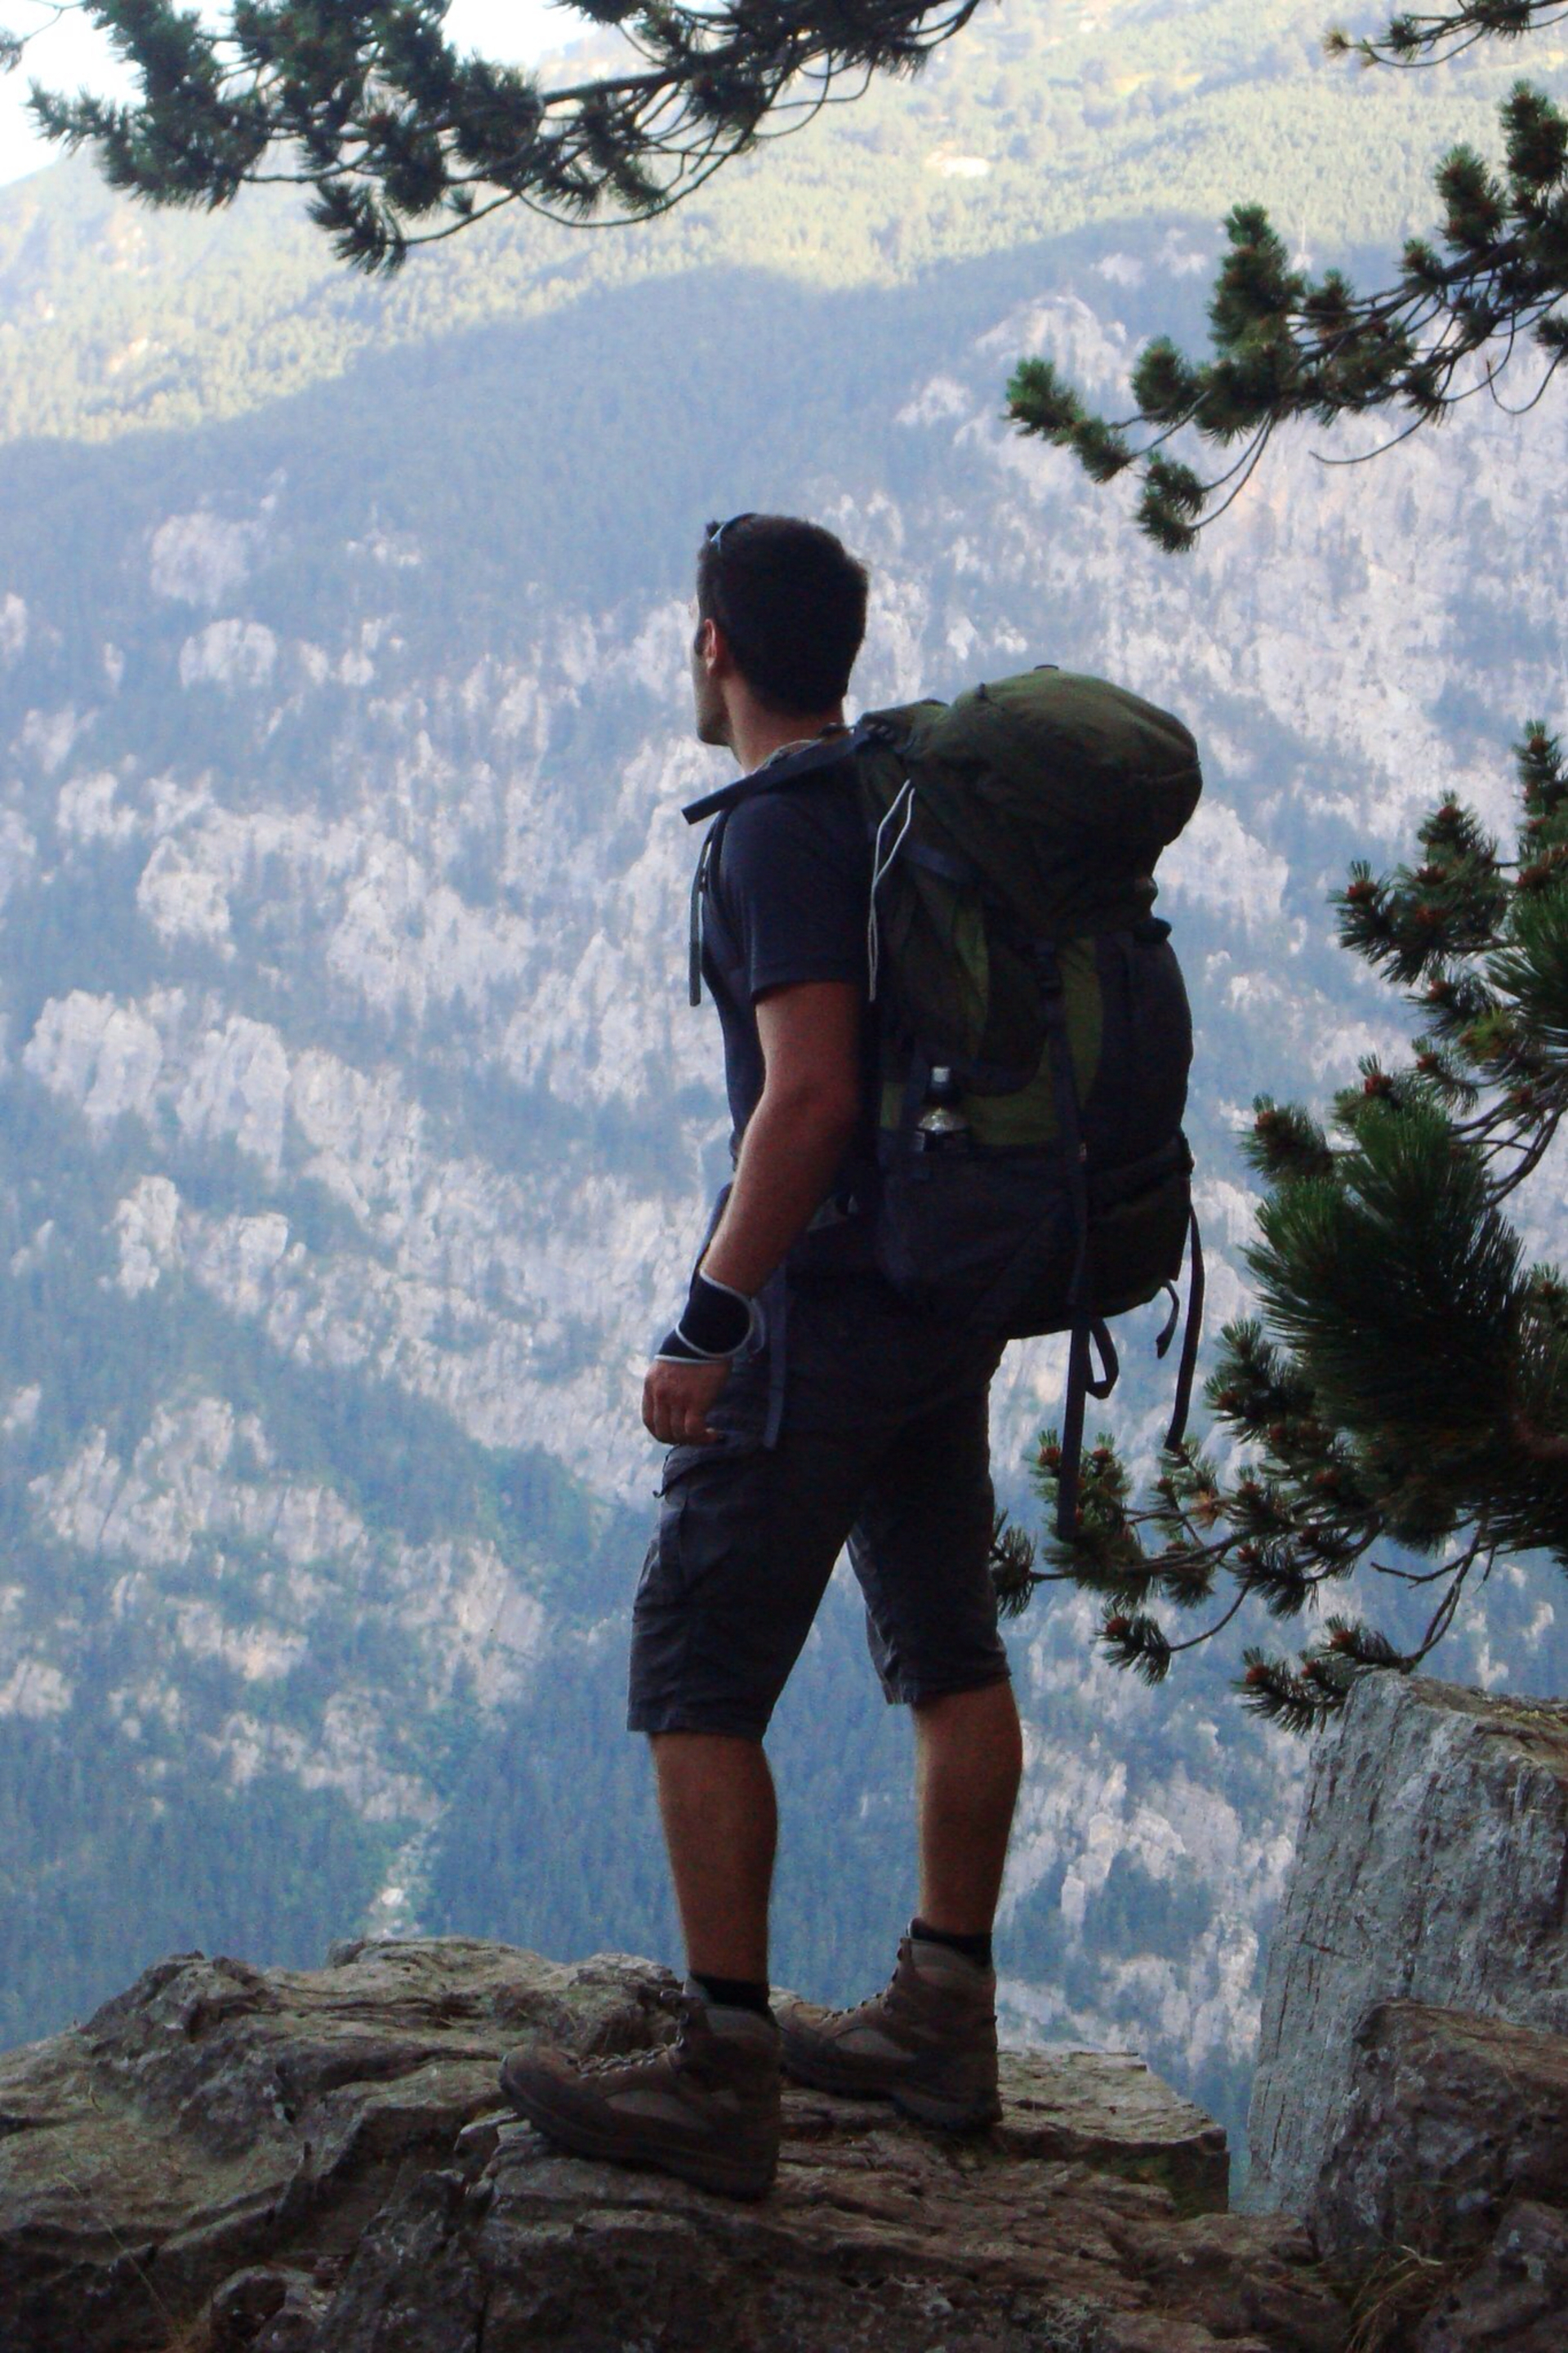 mt.olympus greece travel alone mountain by oden